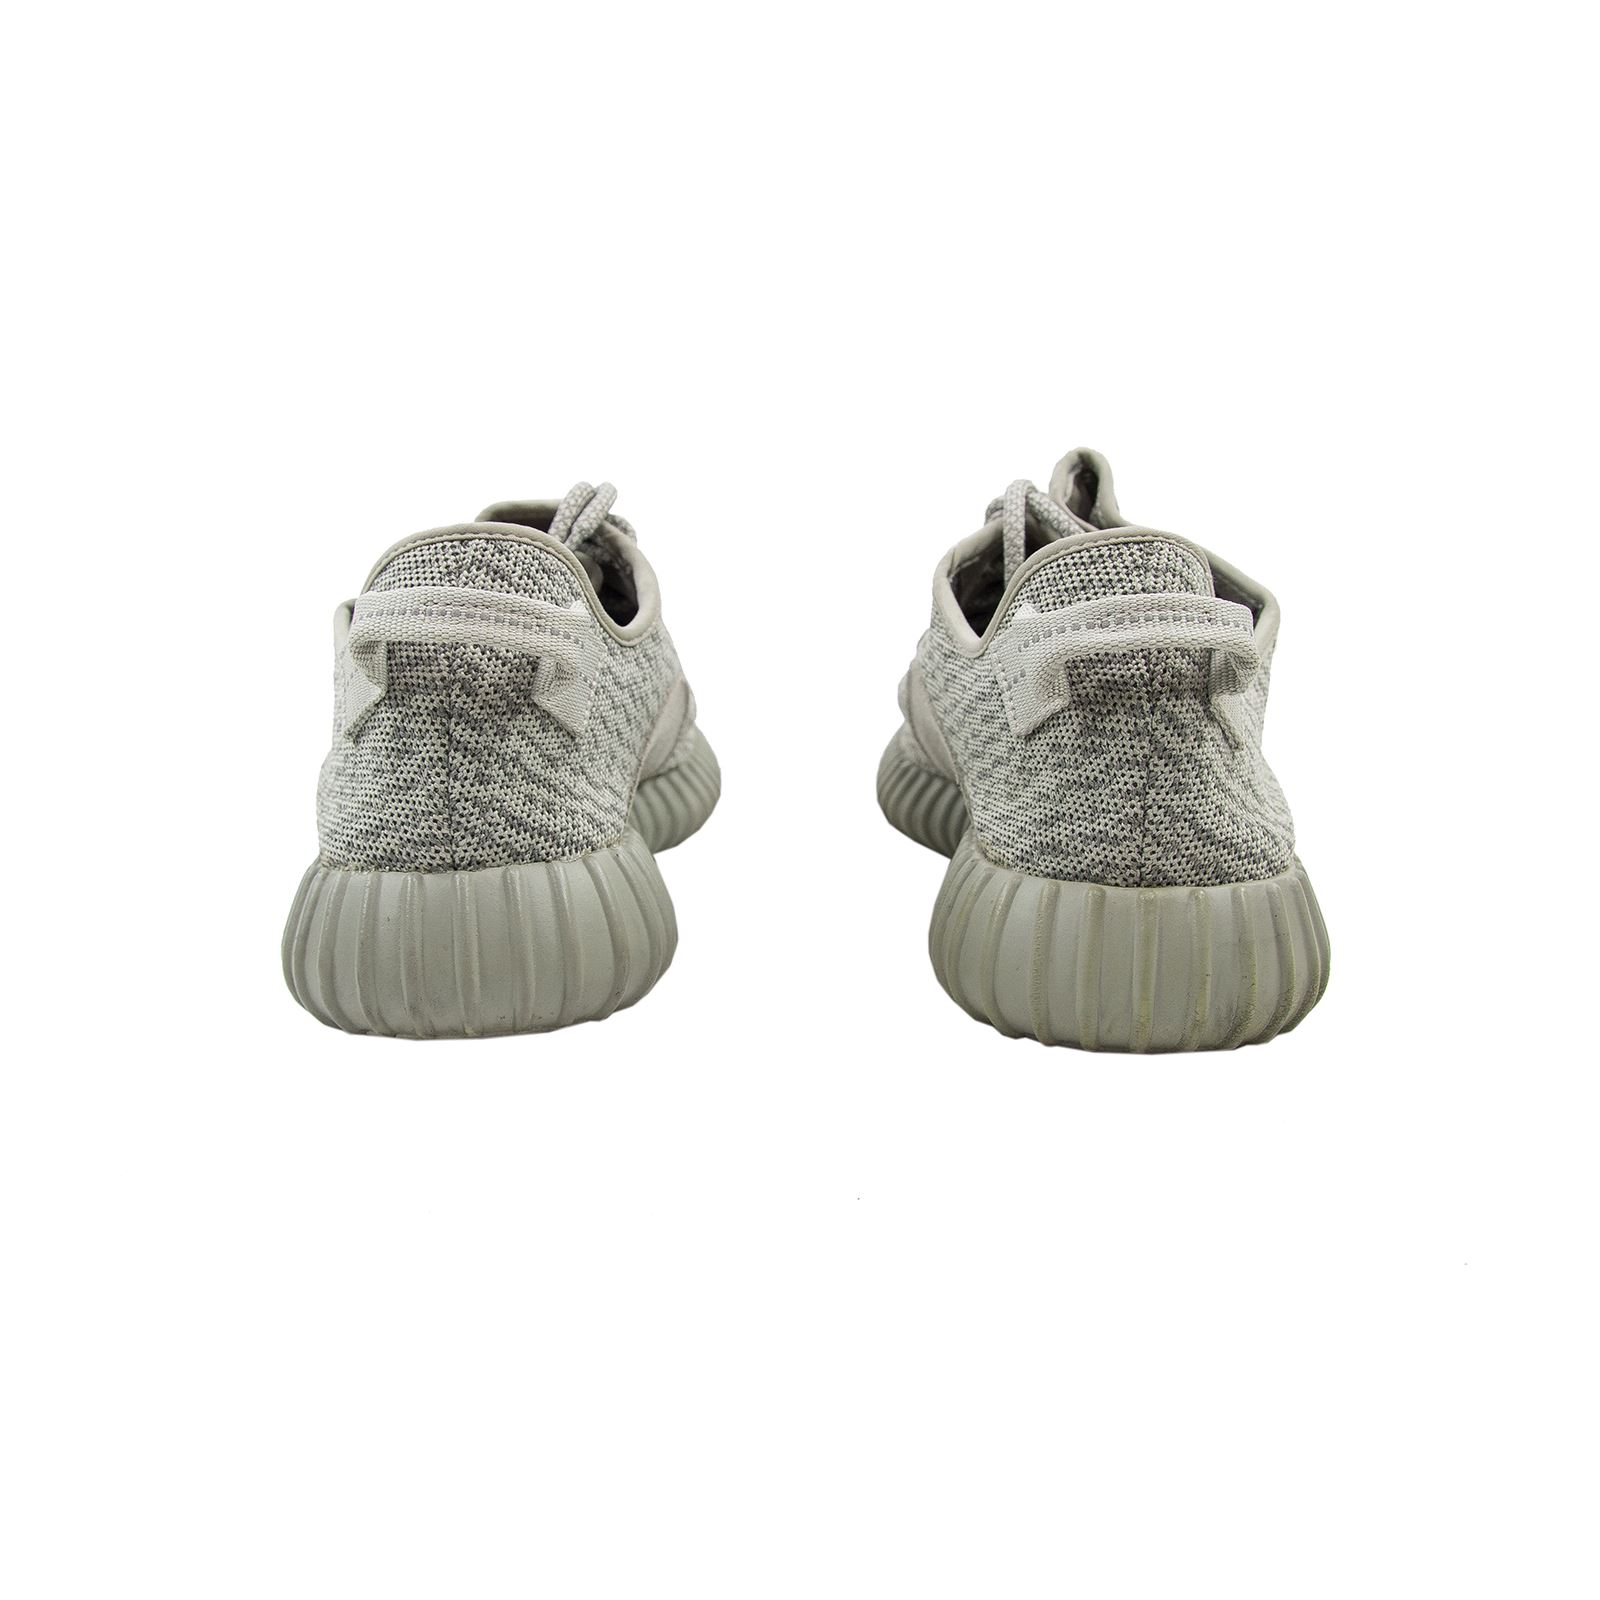 Details about Adidas Yeezy Boost 350 Moonrock Grey AQ2660 Agagra Kanye West Sneakers Shoes 12